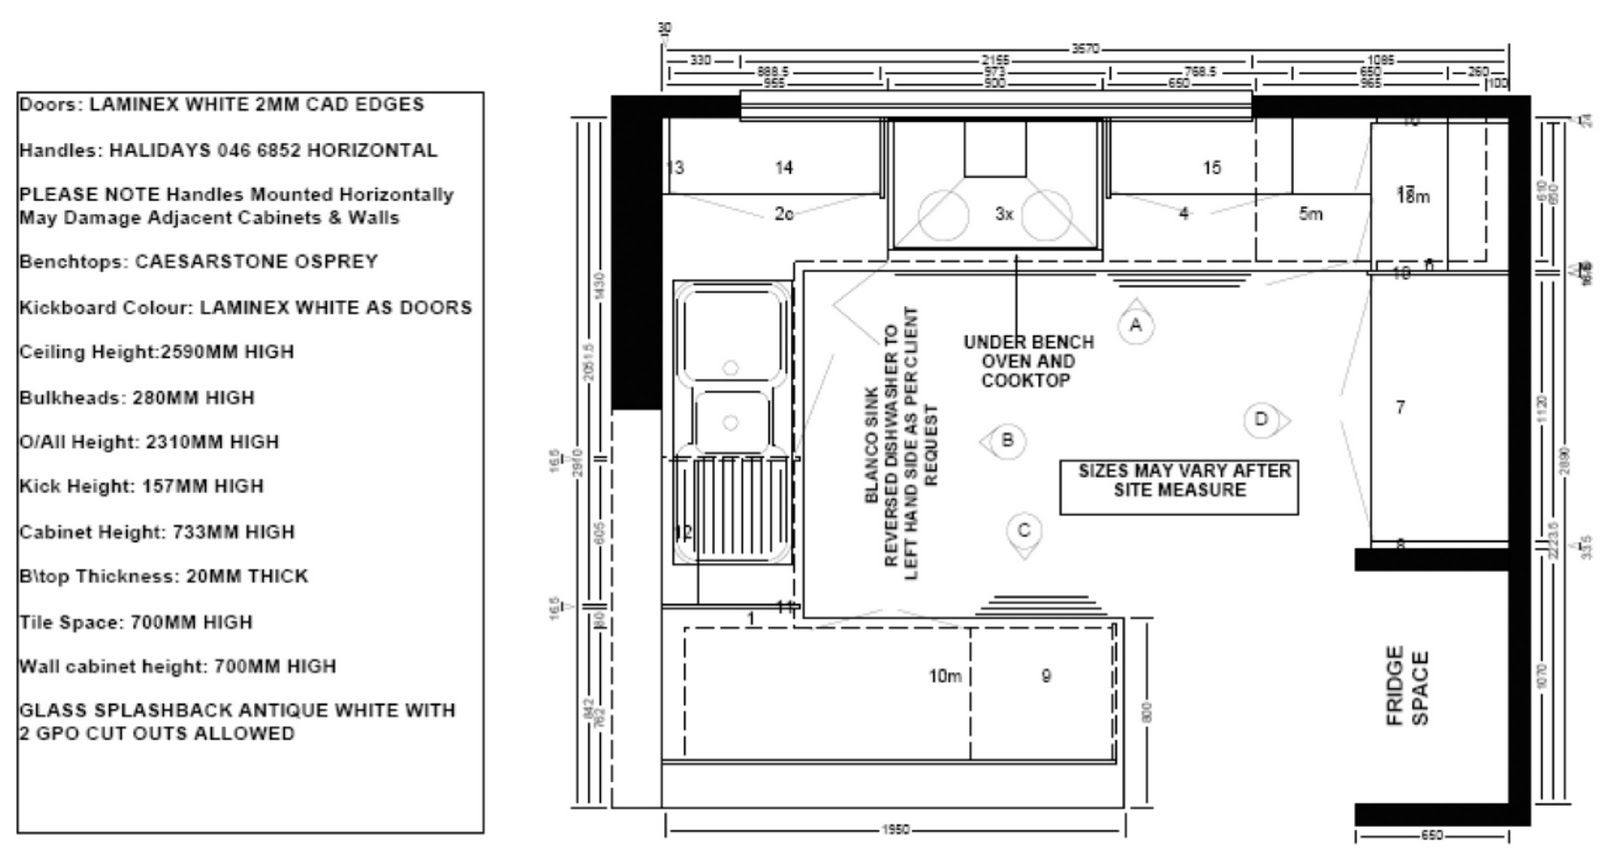 Beautiful Kitchen Design Plans For You Small kitchen